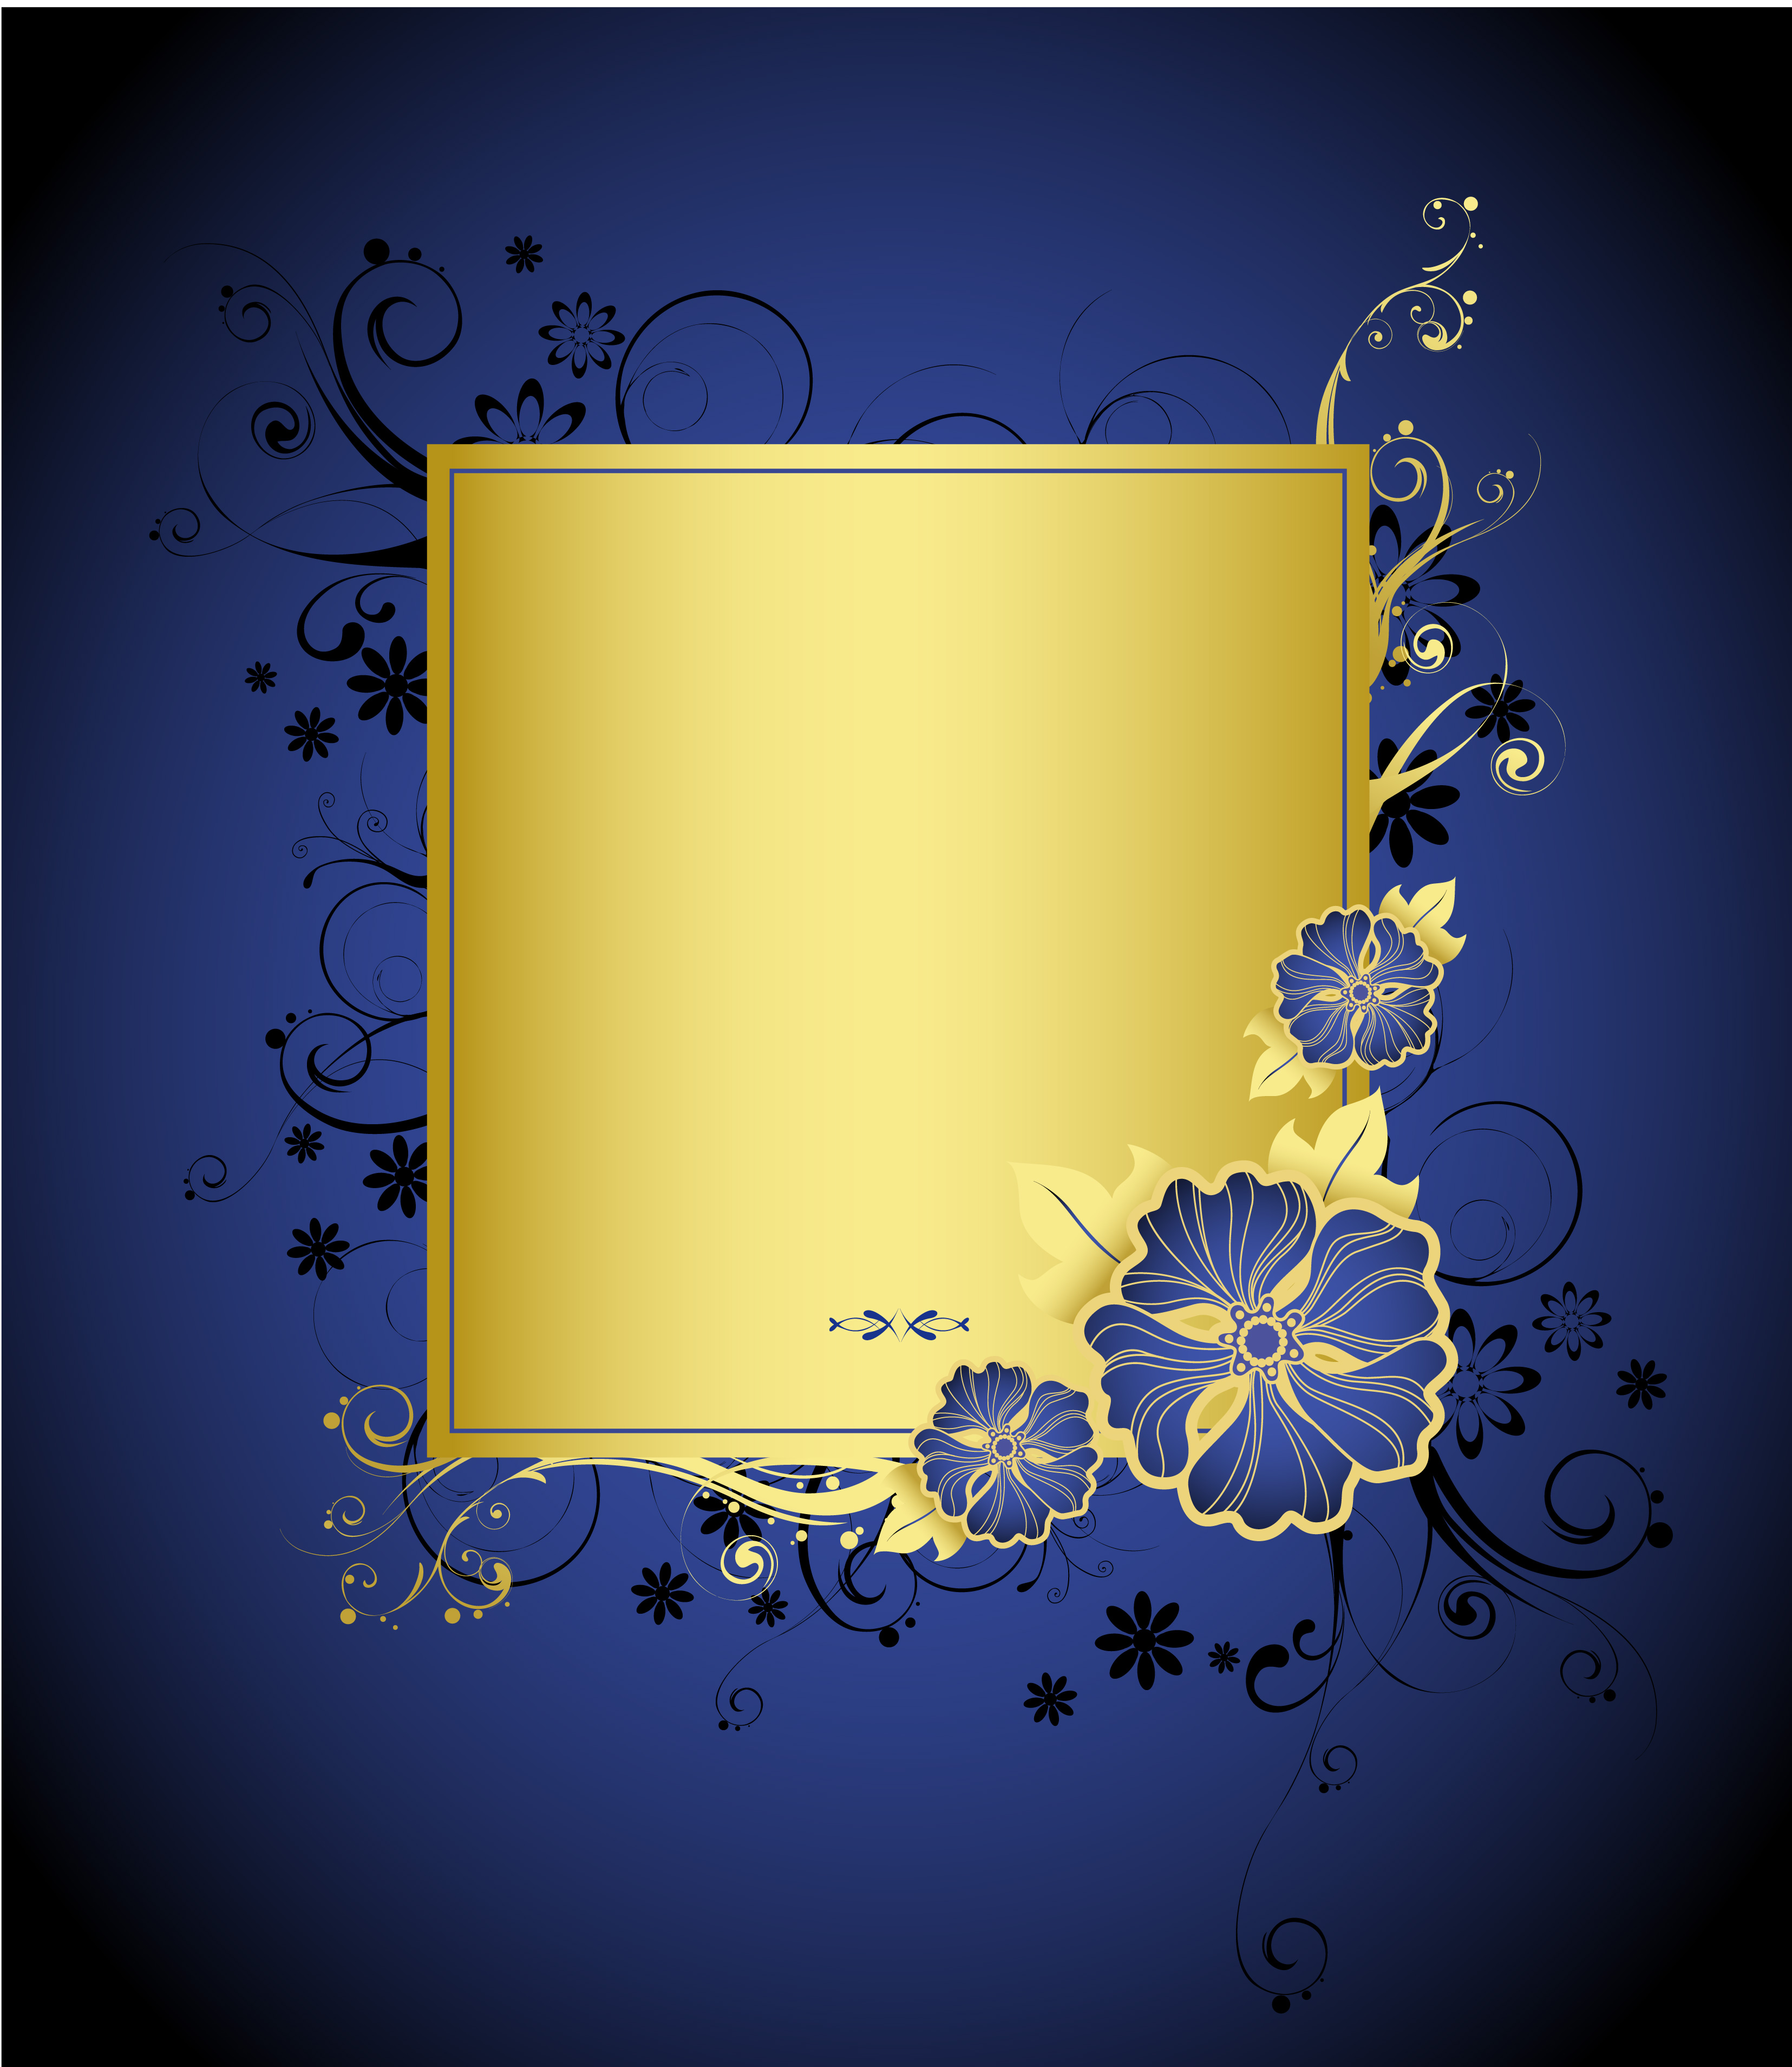 handpainted blue and gold flowers on blue background card